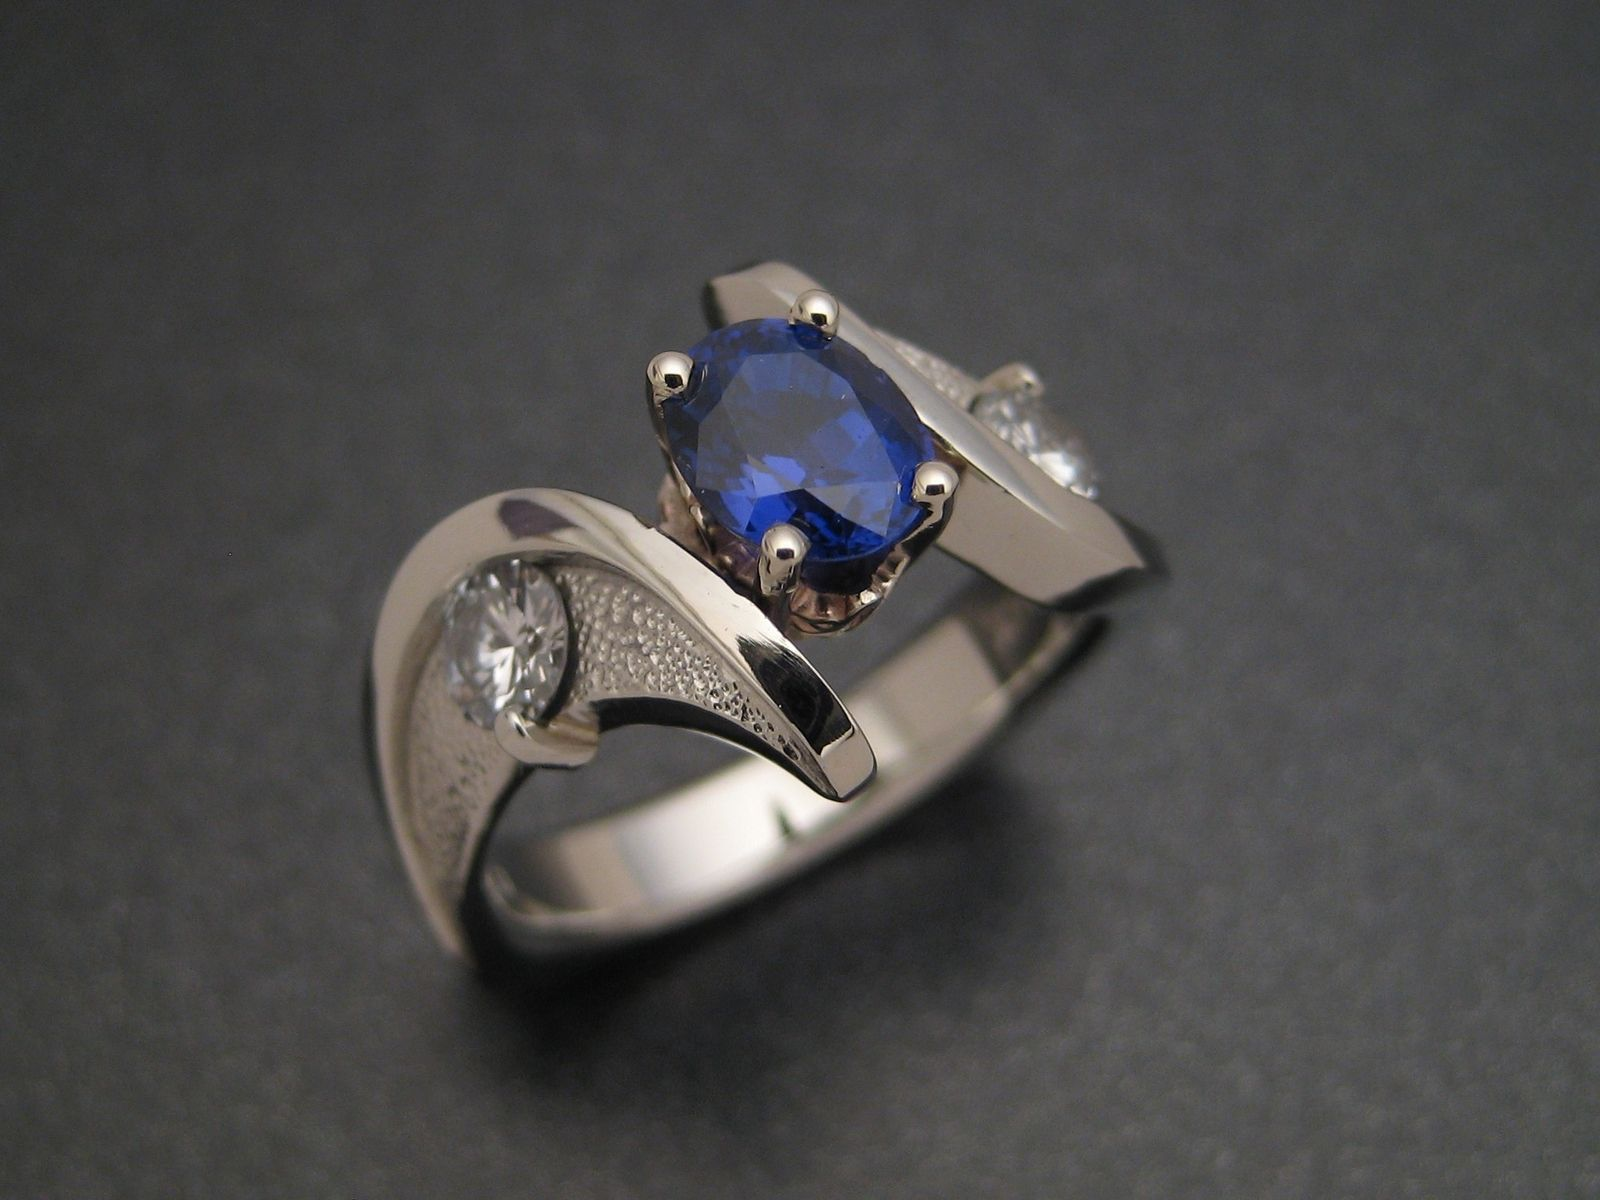 Hand Crafted Sapphire Wedding Ring by Sculpted Jewelry Designs